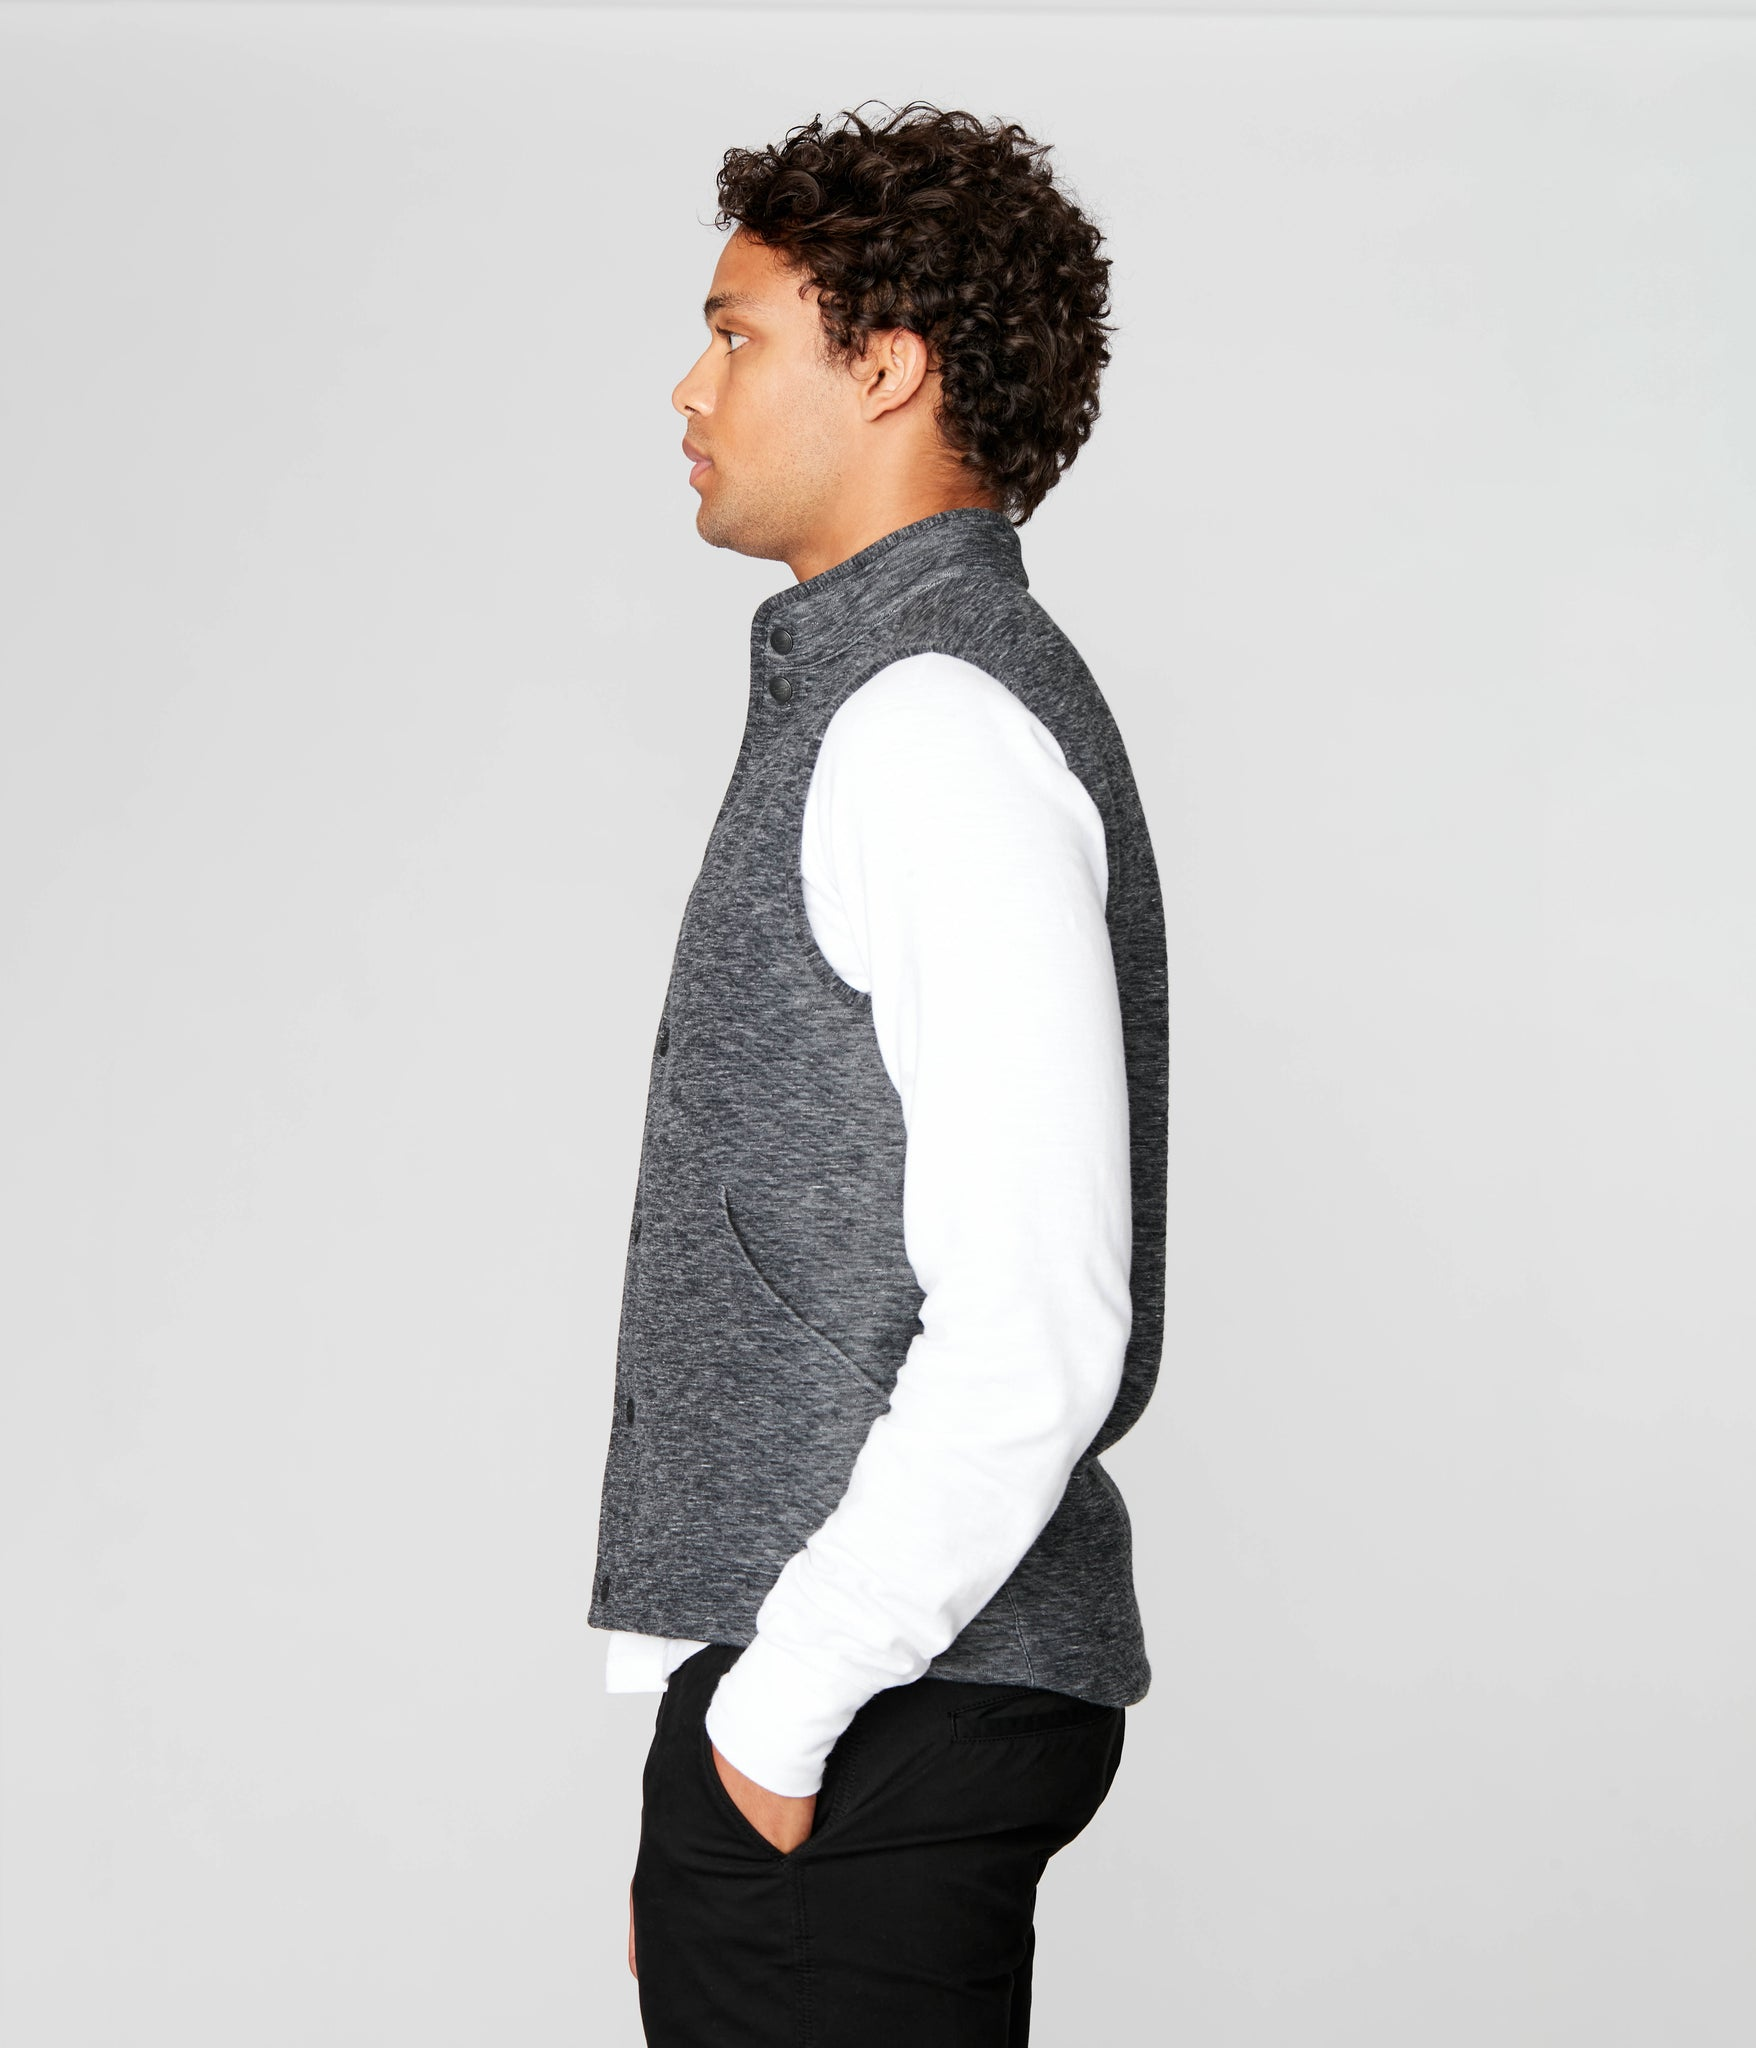 Twill Quilt Jacquard Fuji Shirt Jac Vest - Charcoal Heather